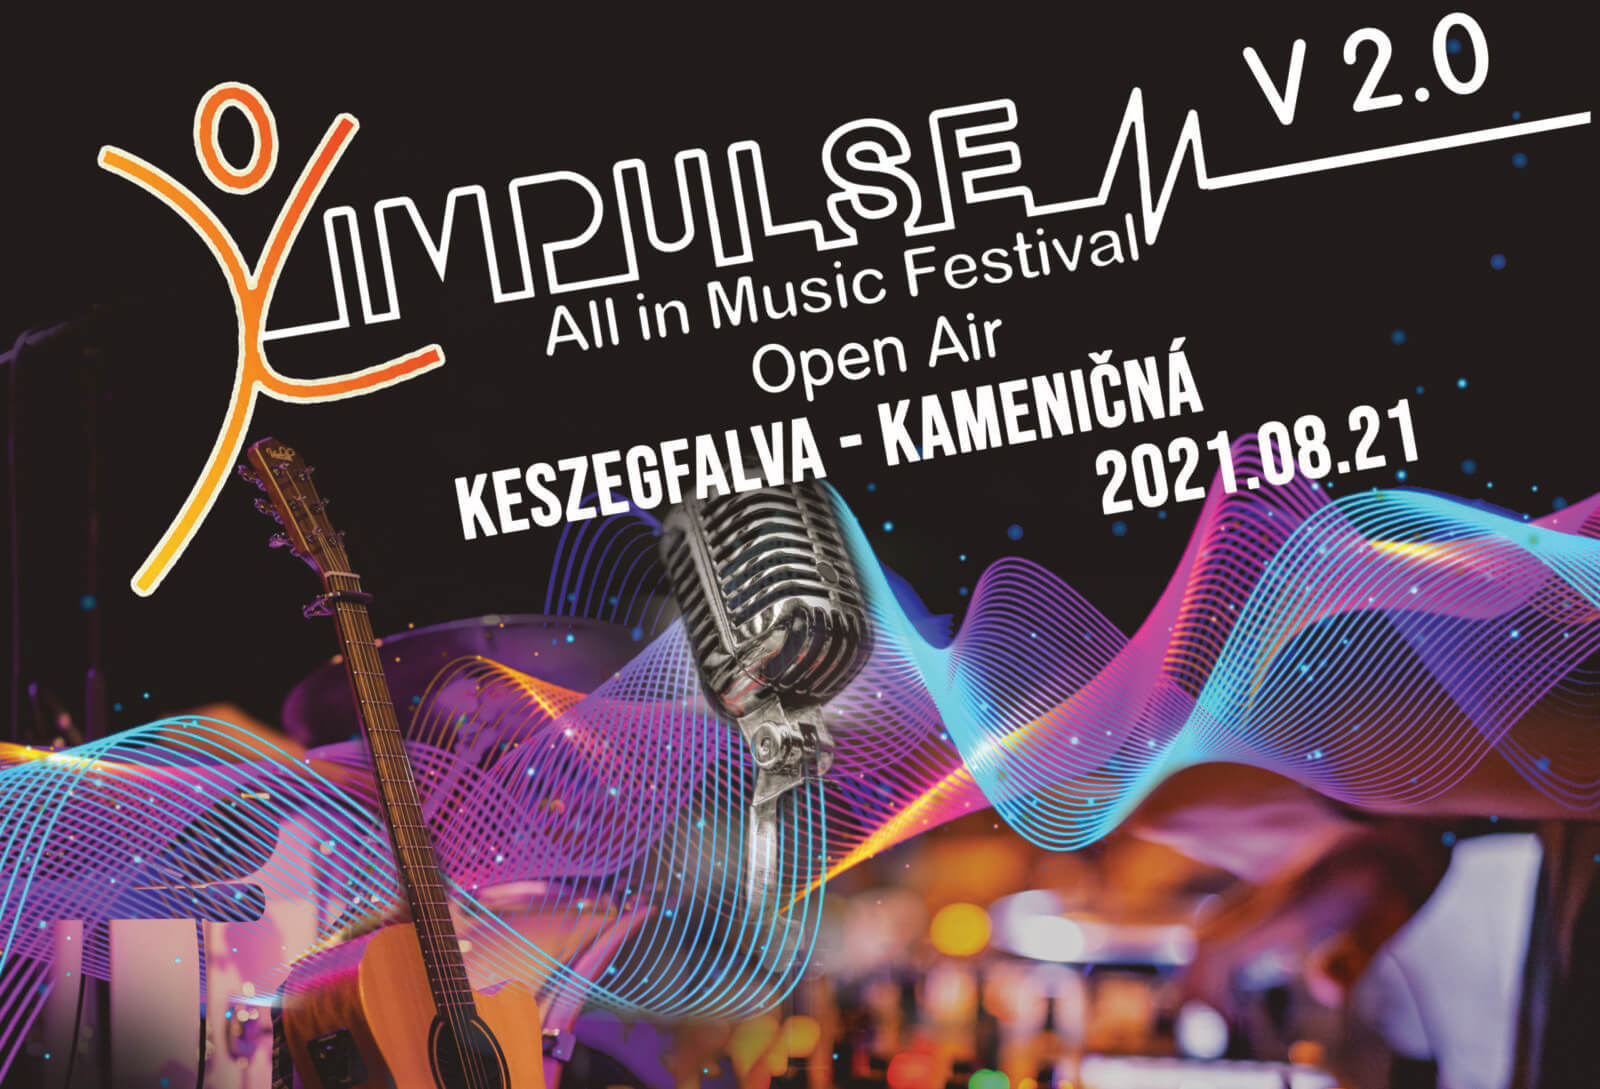 Impulse All in Music Festival - Open Air volume 2